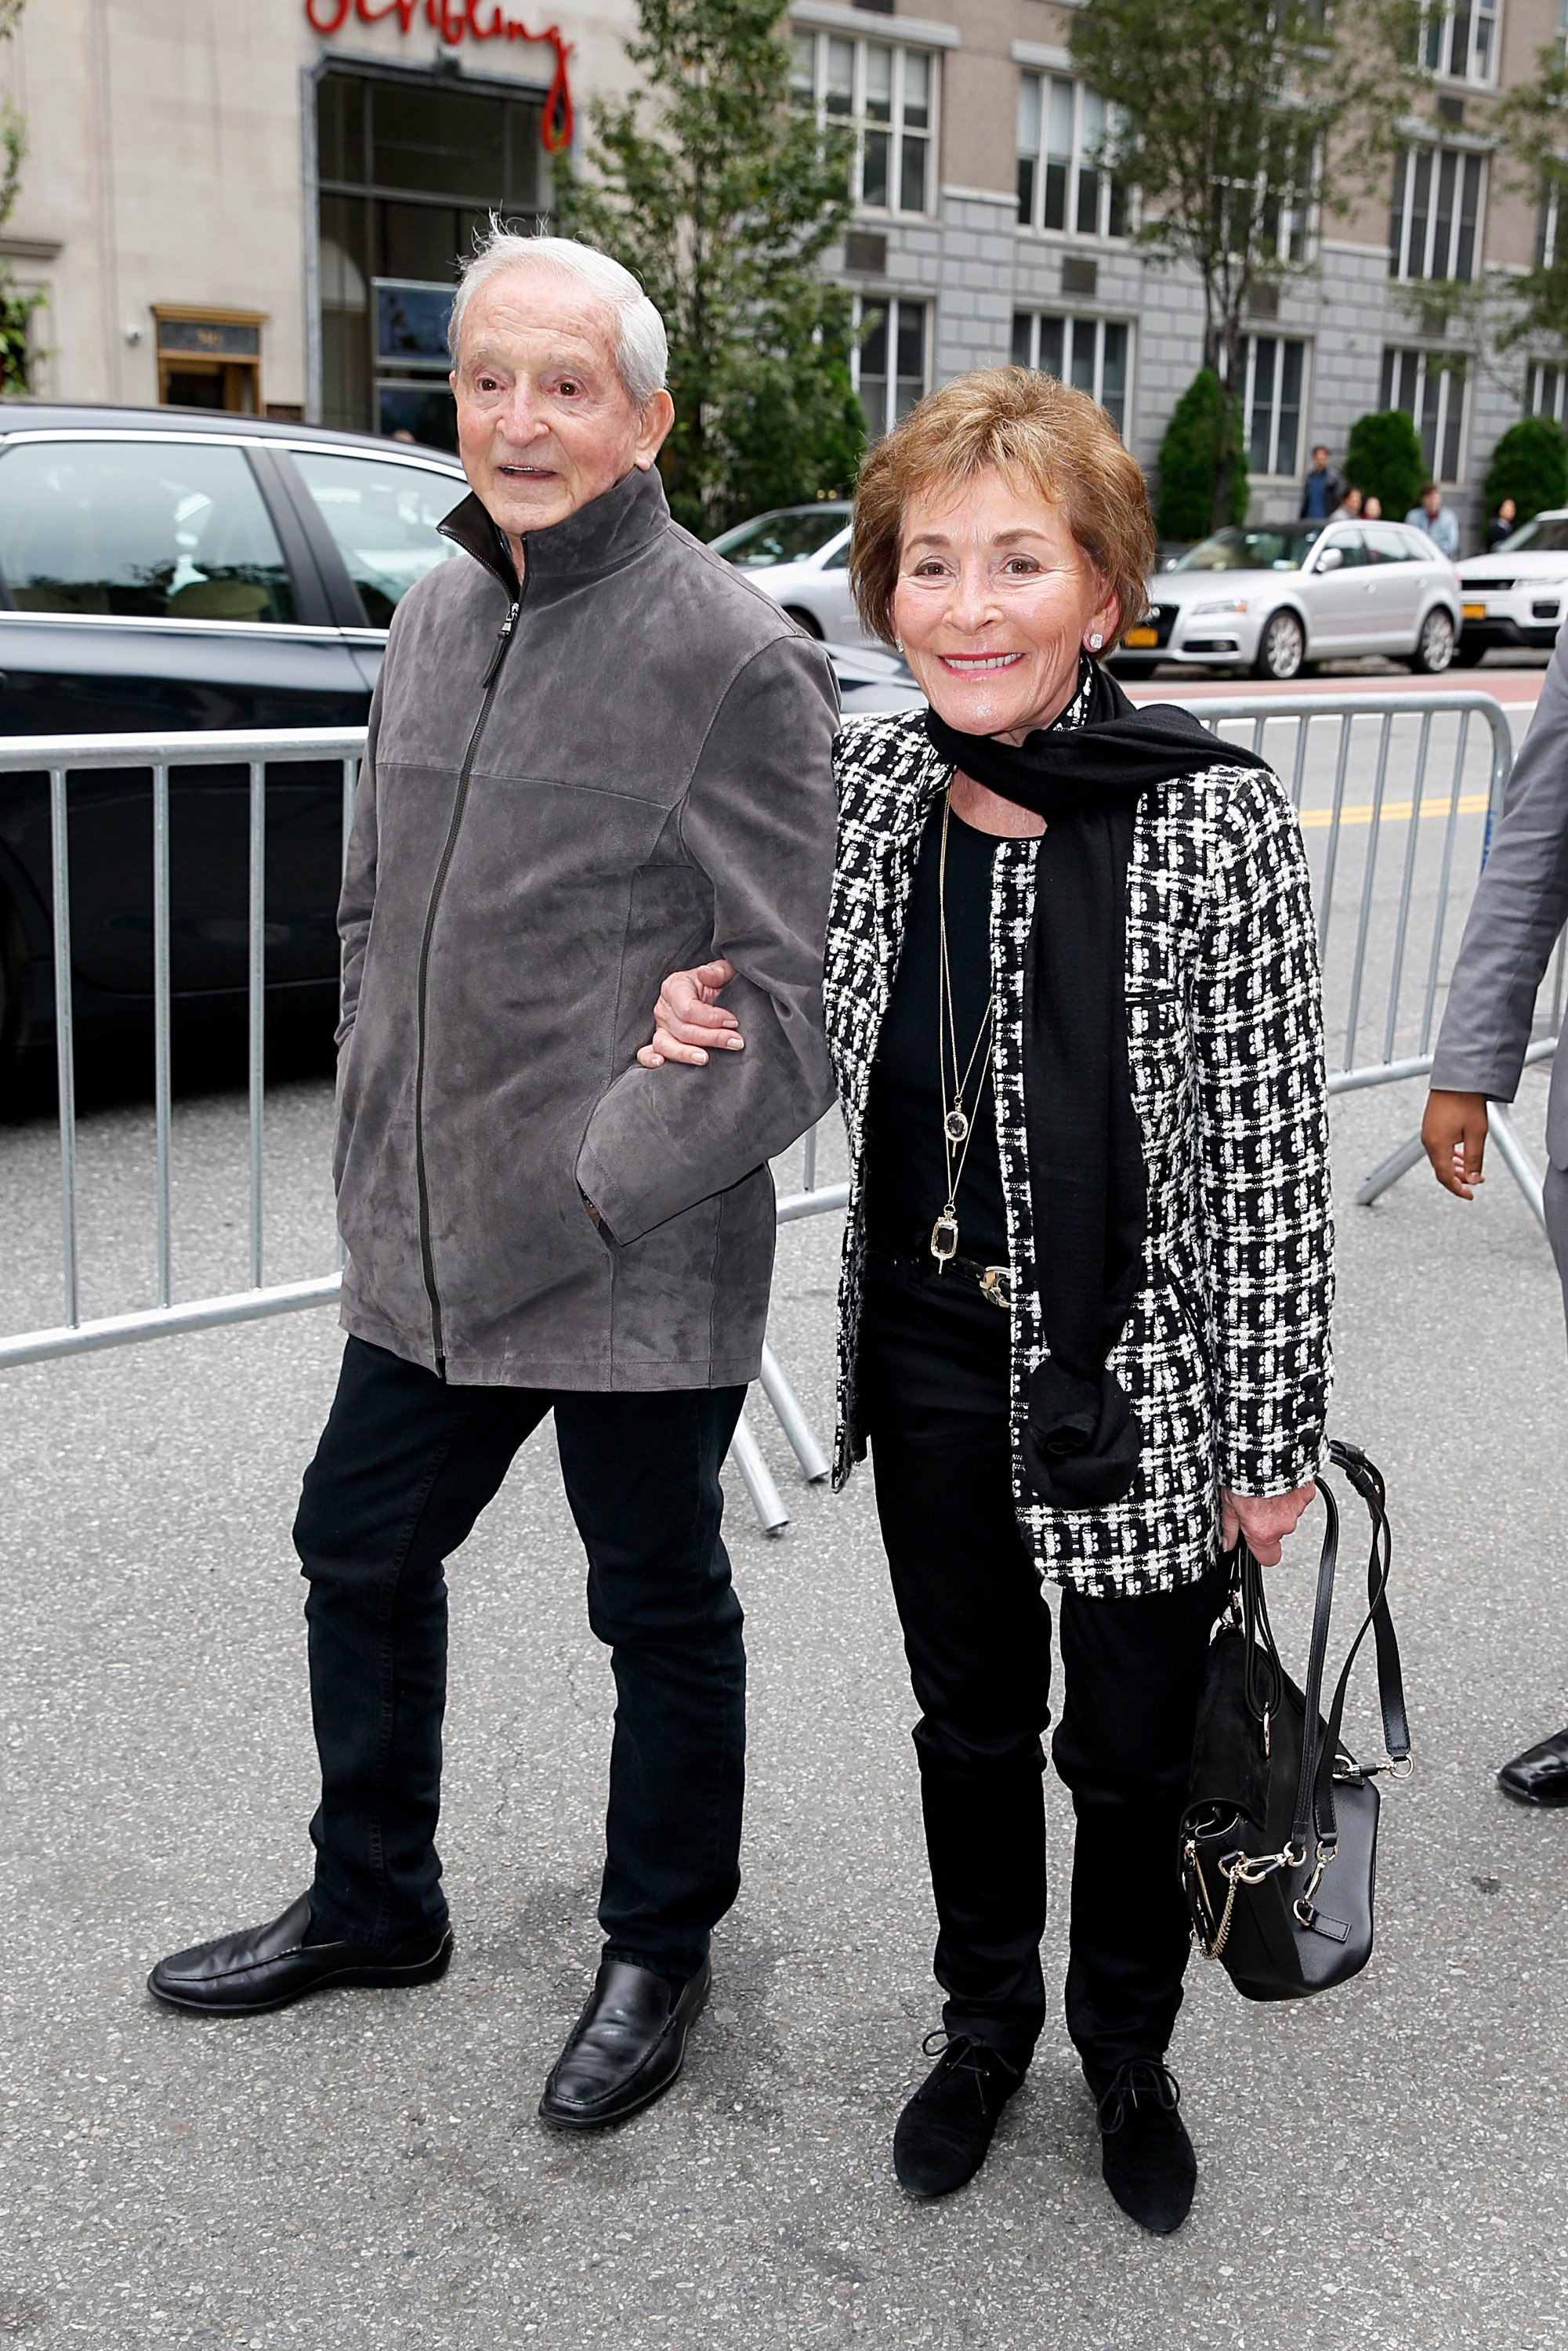 Judge Judy Sheindlin and husband Jerry Sheindlin are photographed in New York City on October 14, 2018 | Photo: Getty Images